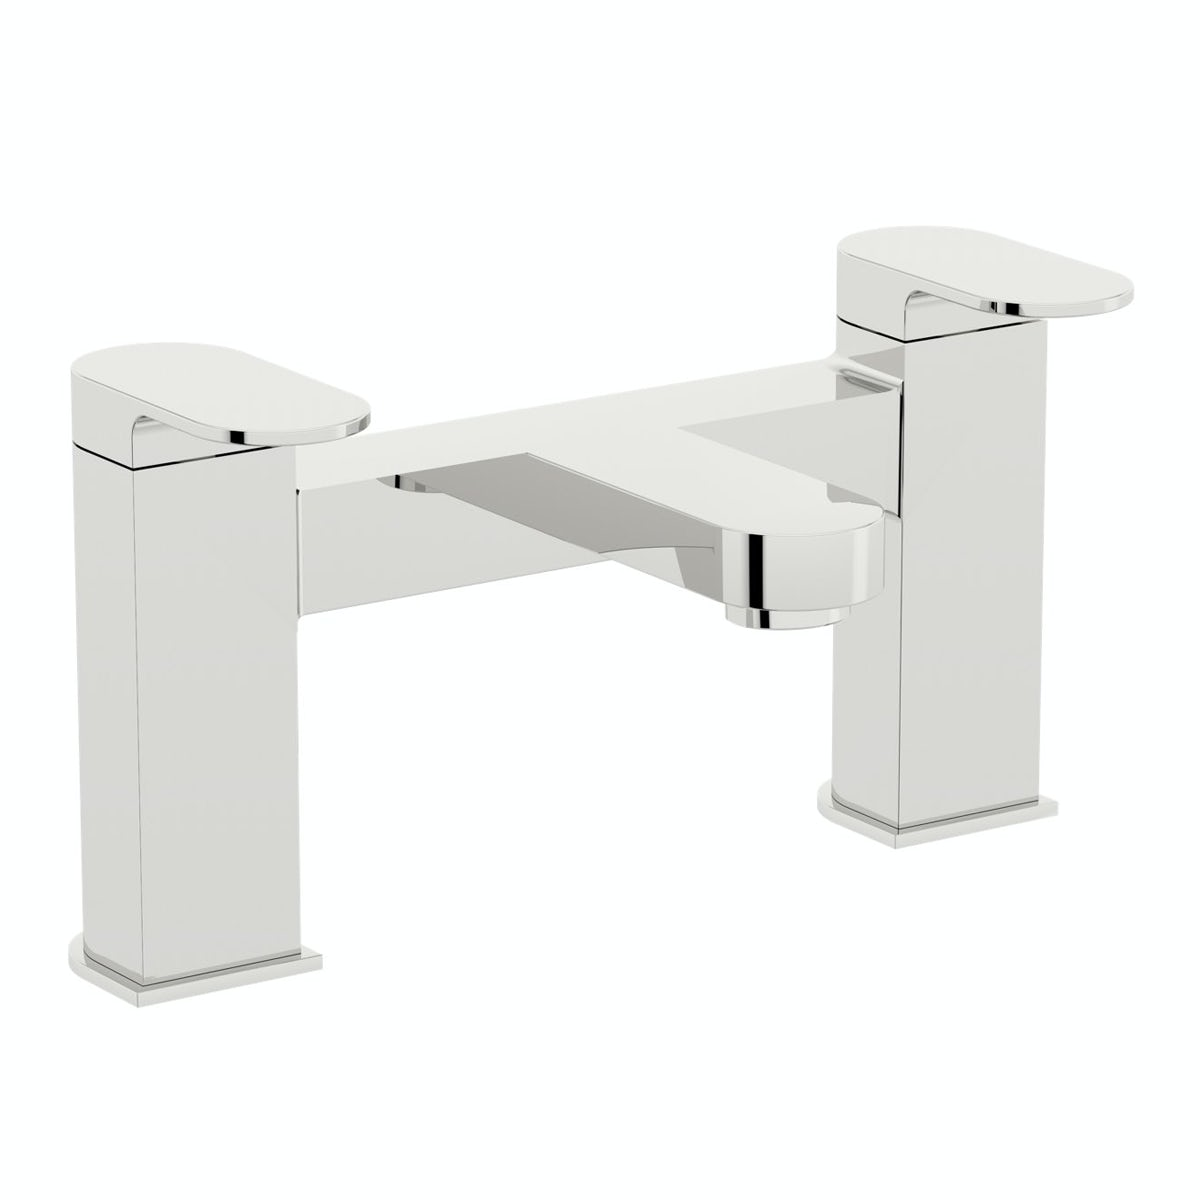 Mode Hardy bath mixer tap